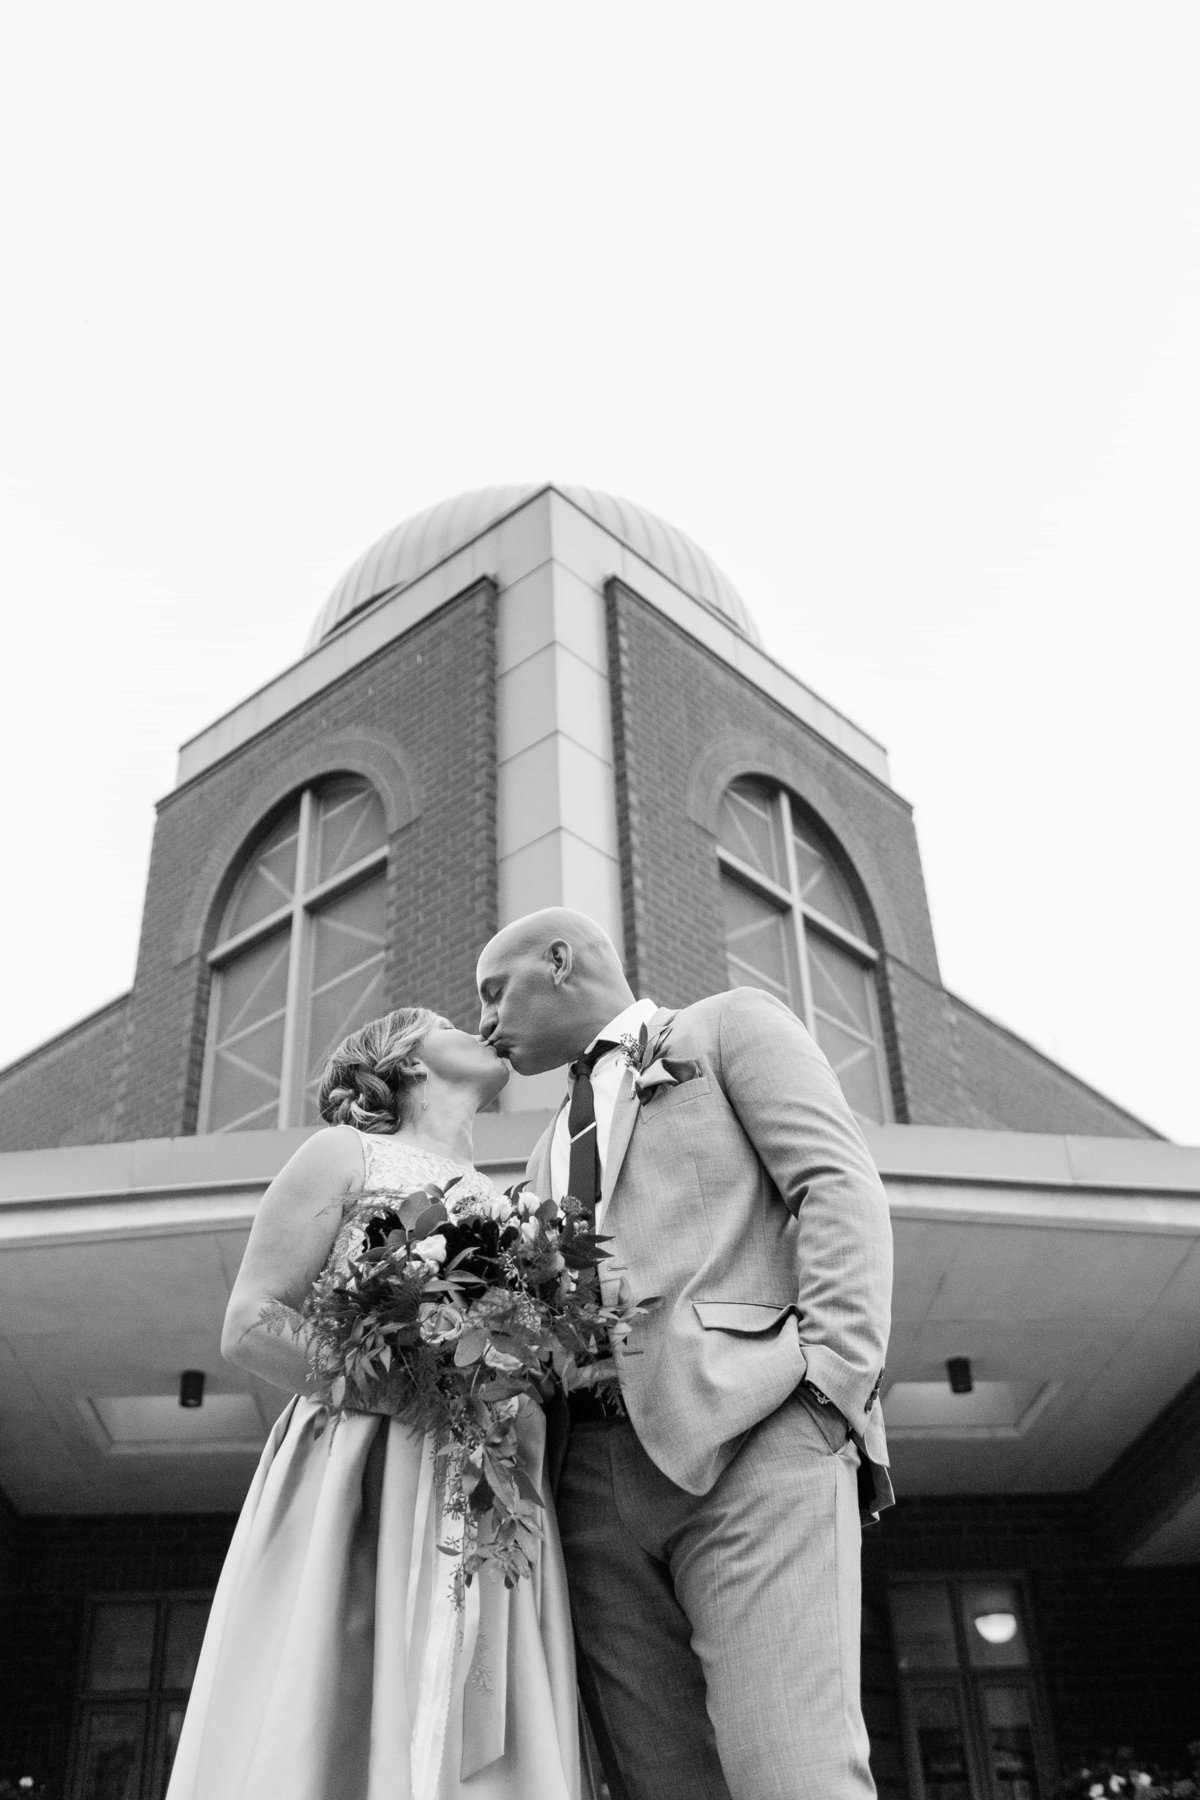 Toronto Ontario Wedding Photographer - Silver Linings Photography-14